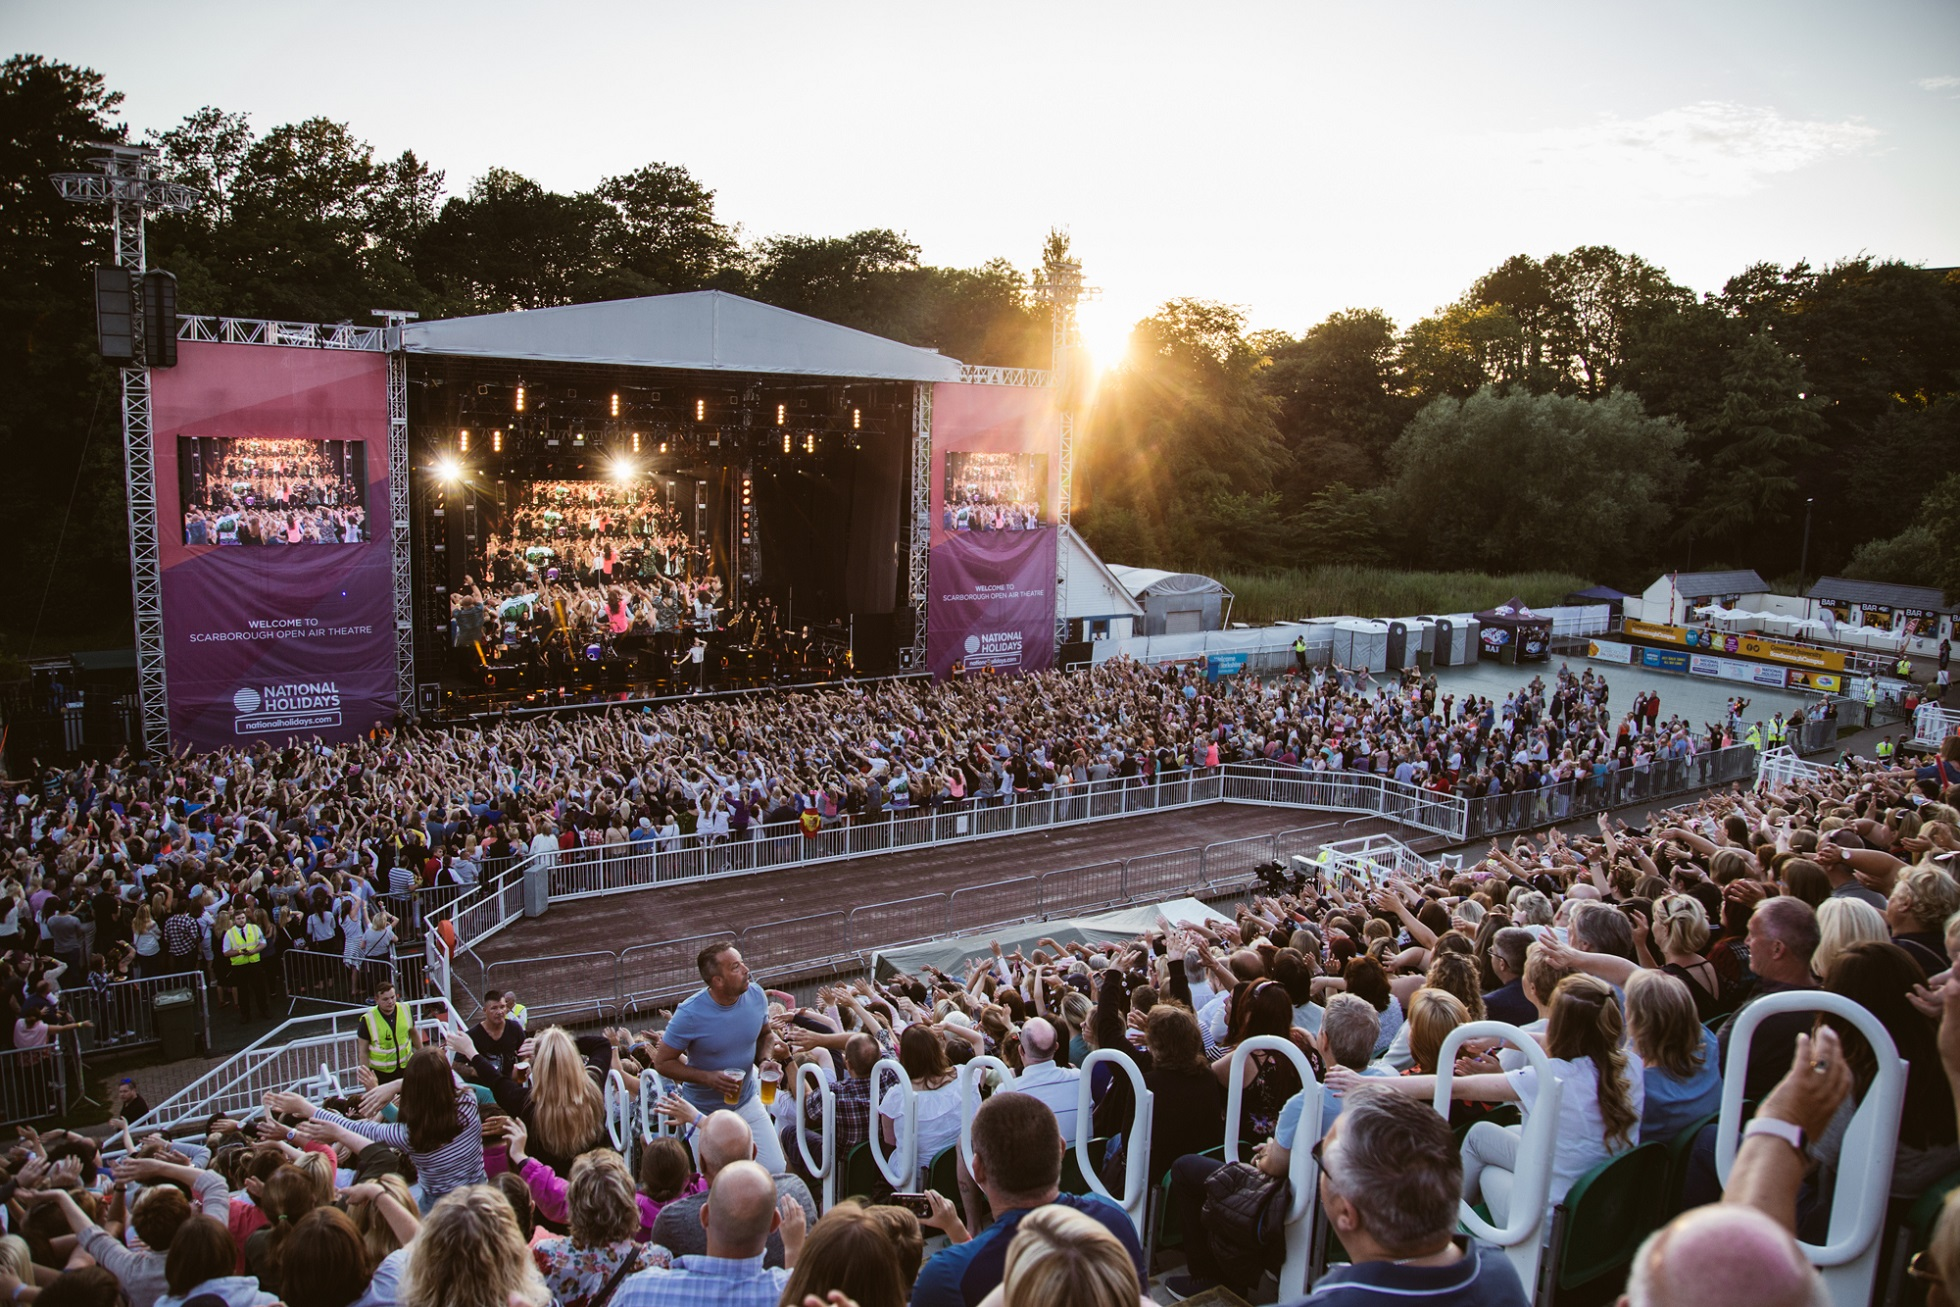 Free Tickets Up For Grabs… As The Final Music Act For 2018 Is Set To Be Revealed